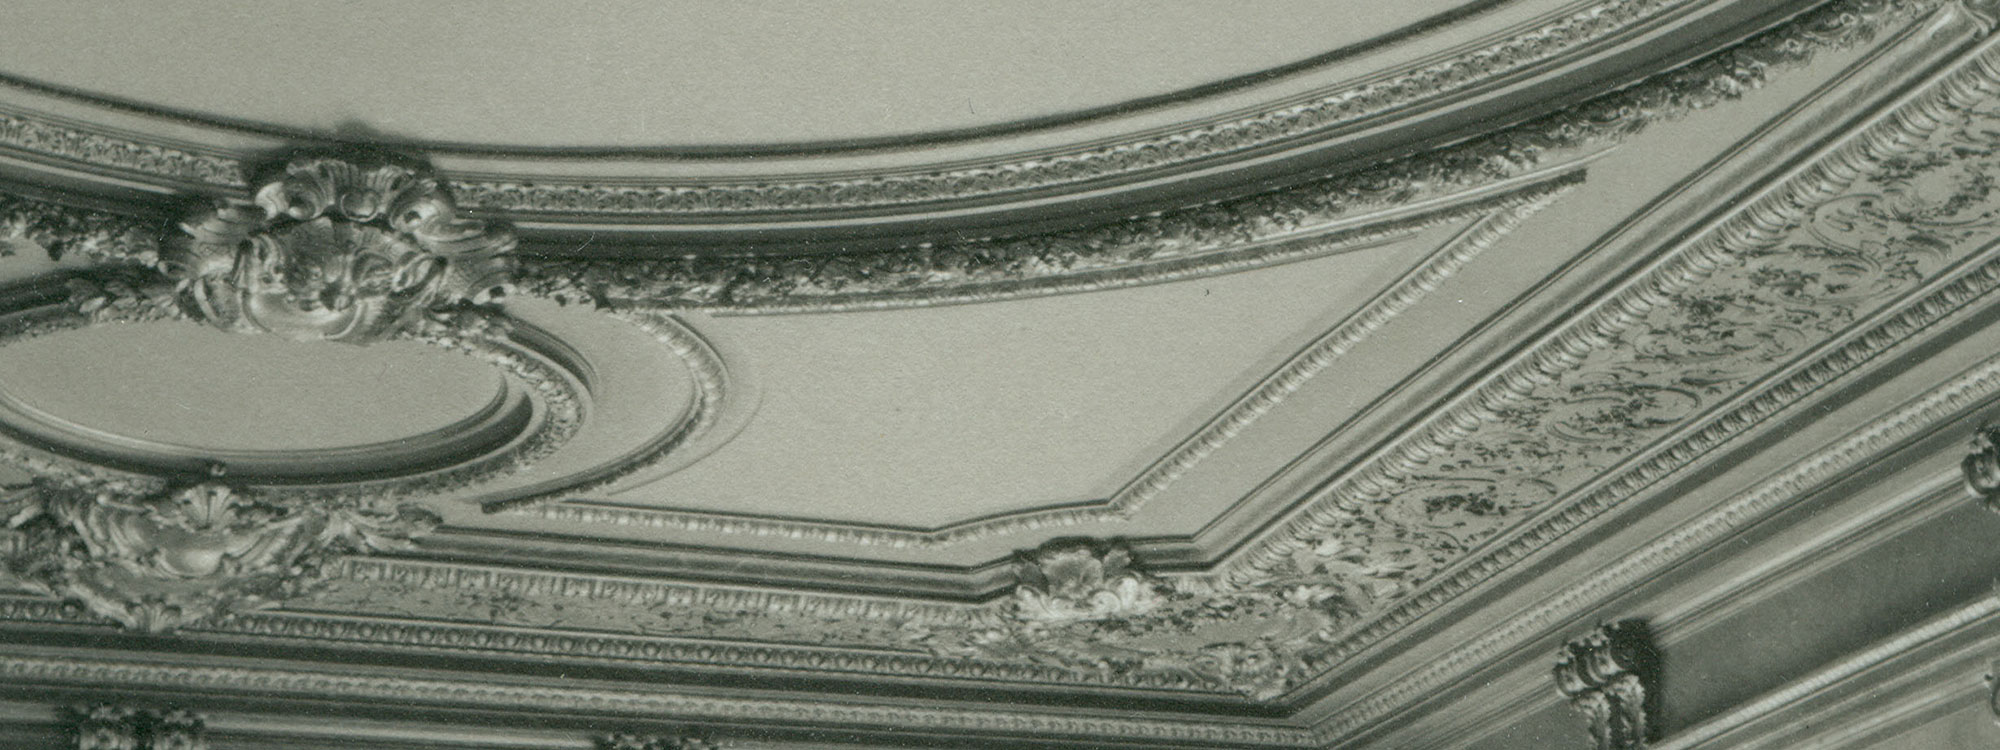 Decorative background detail view of a ceiling